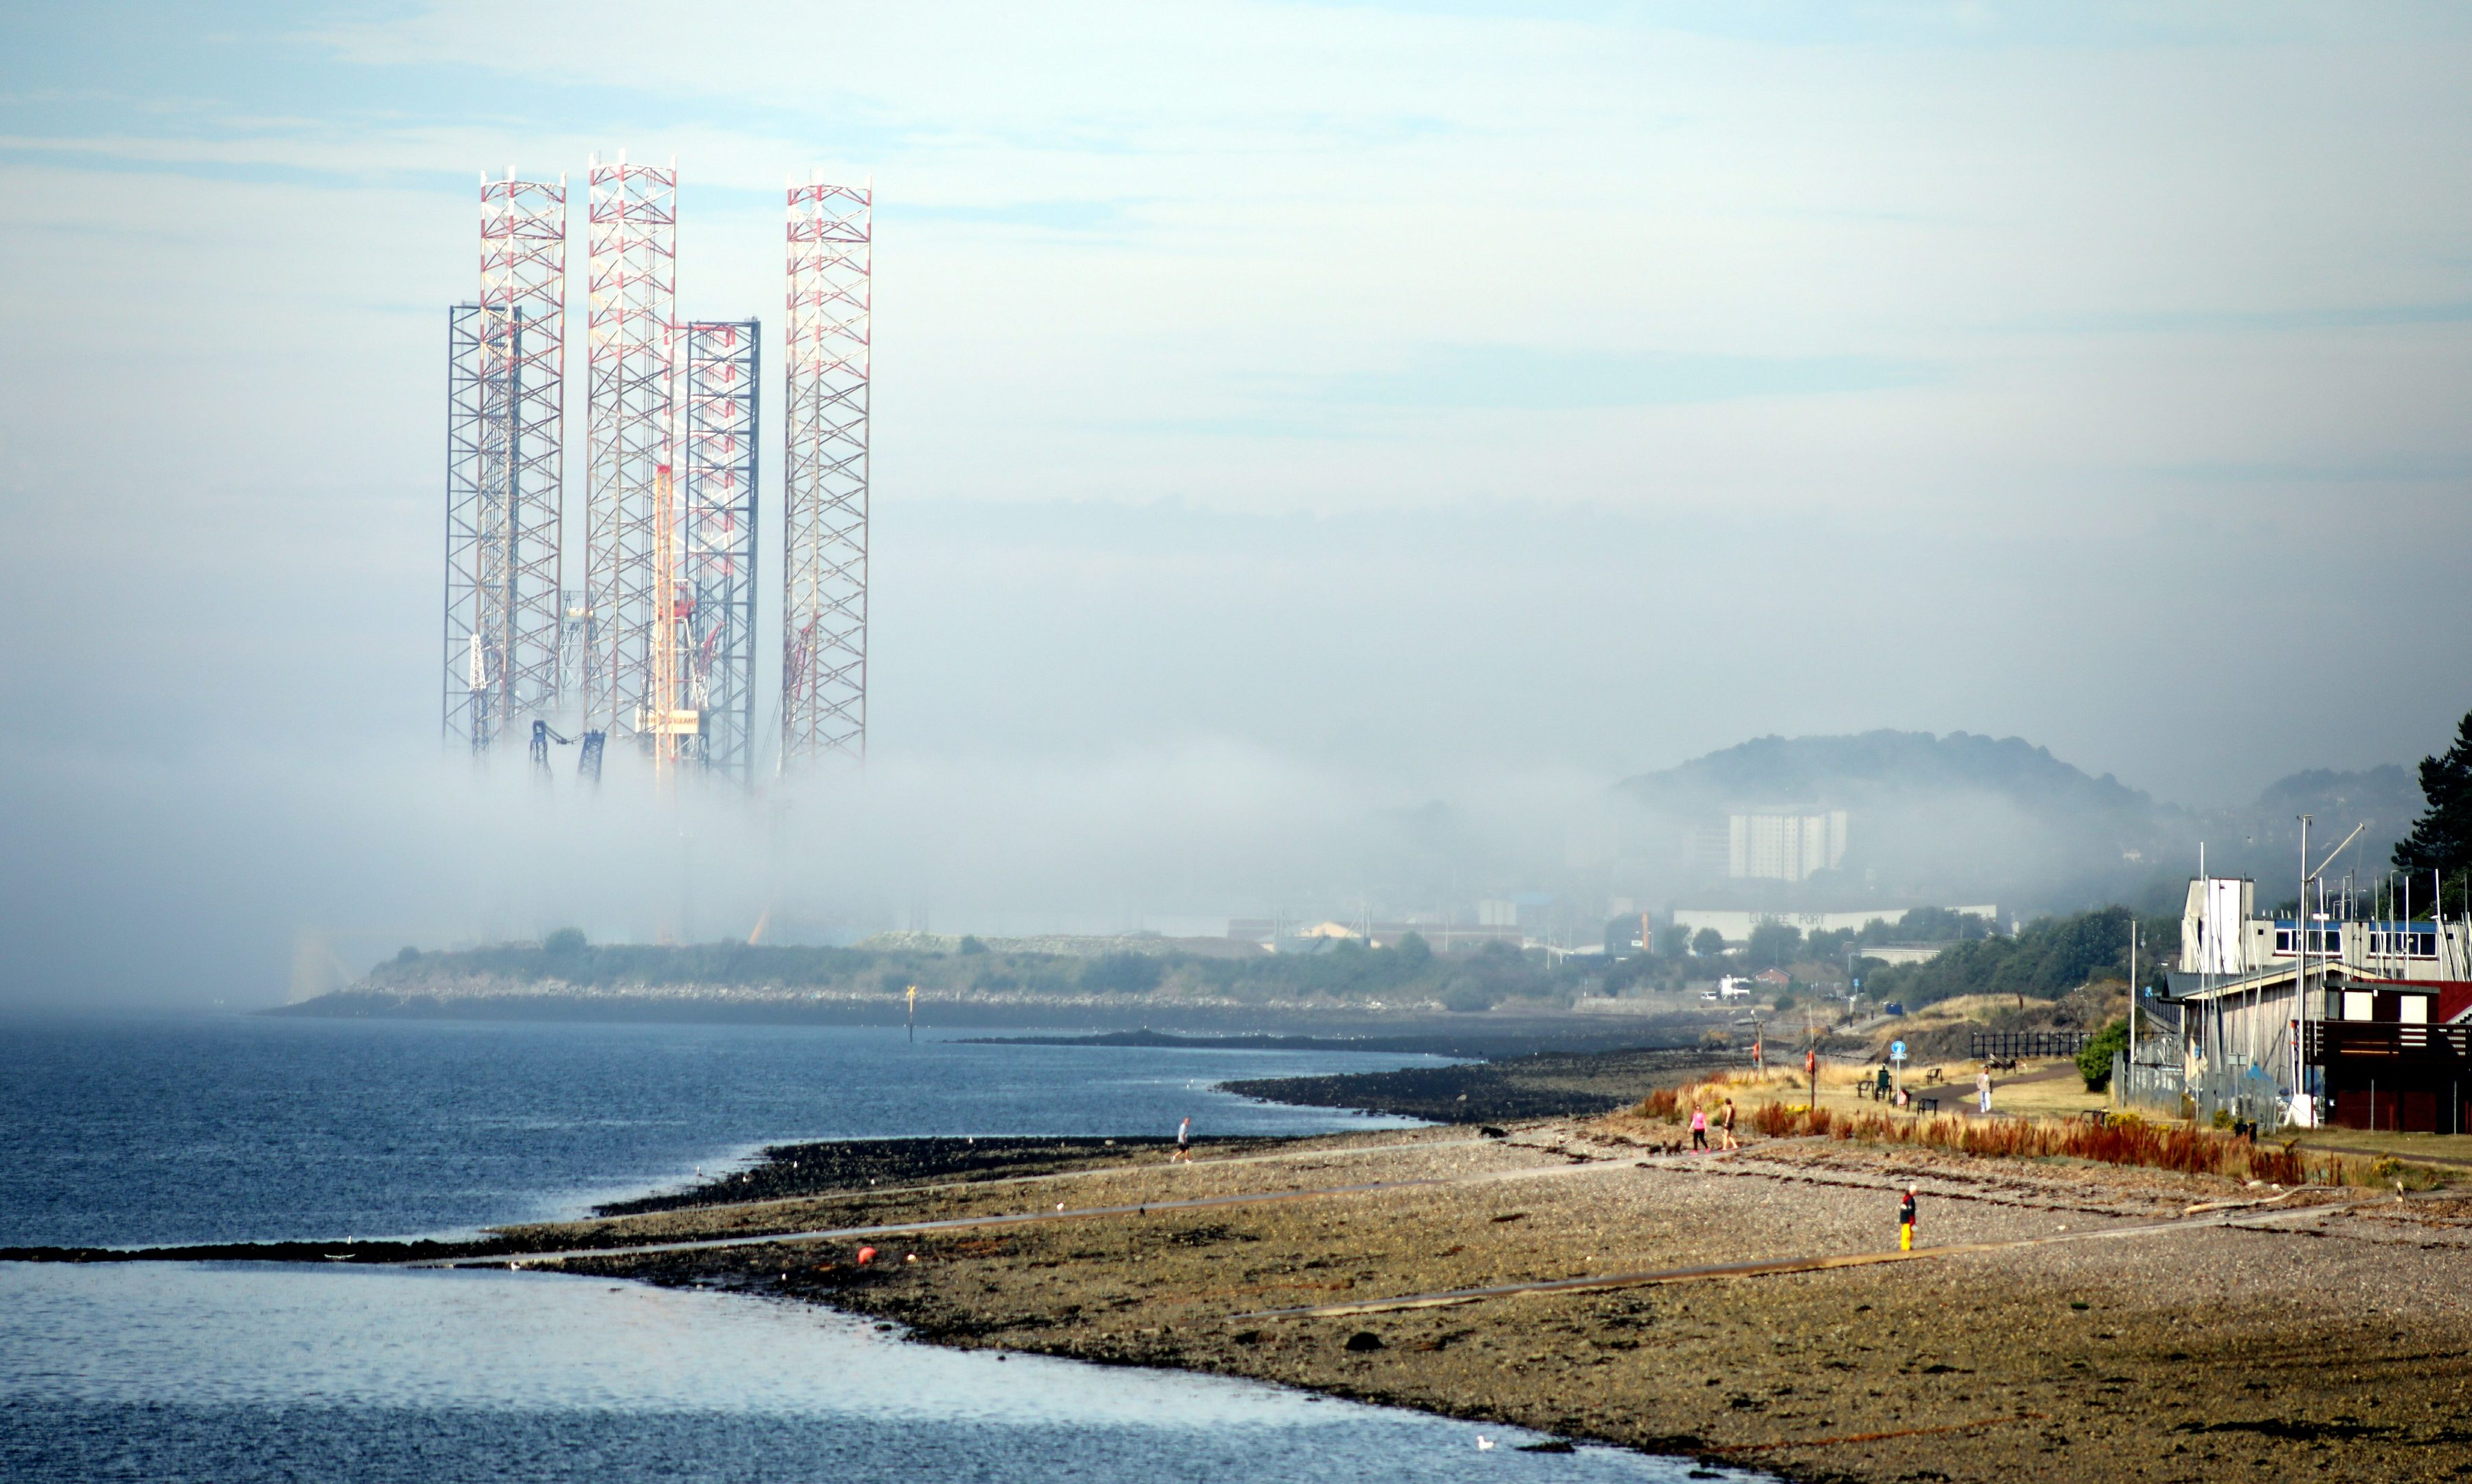 Haar moves into  the Port of Dundee during the final day of the summer 2018 heatwave on Friday, July 27 2018,